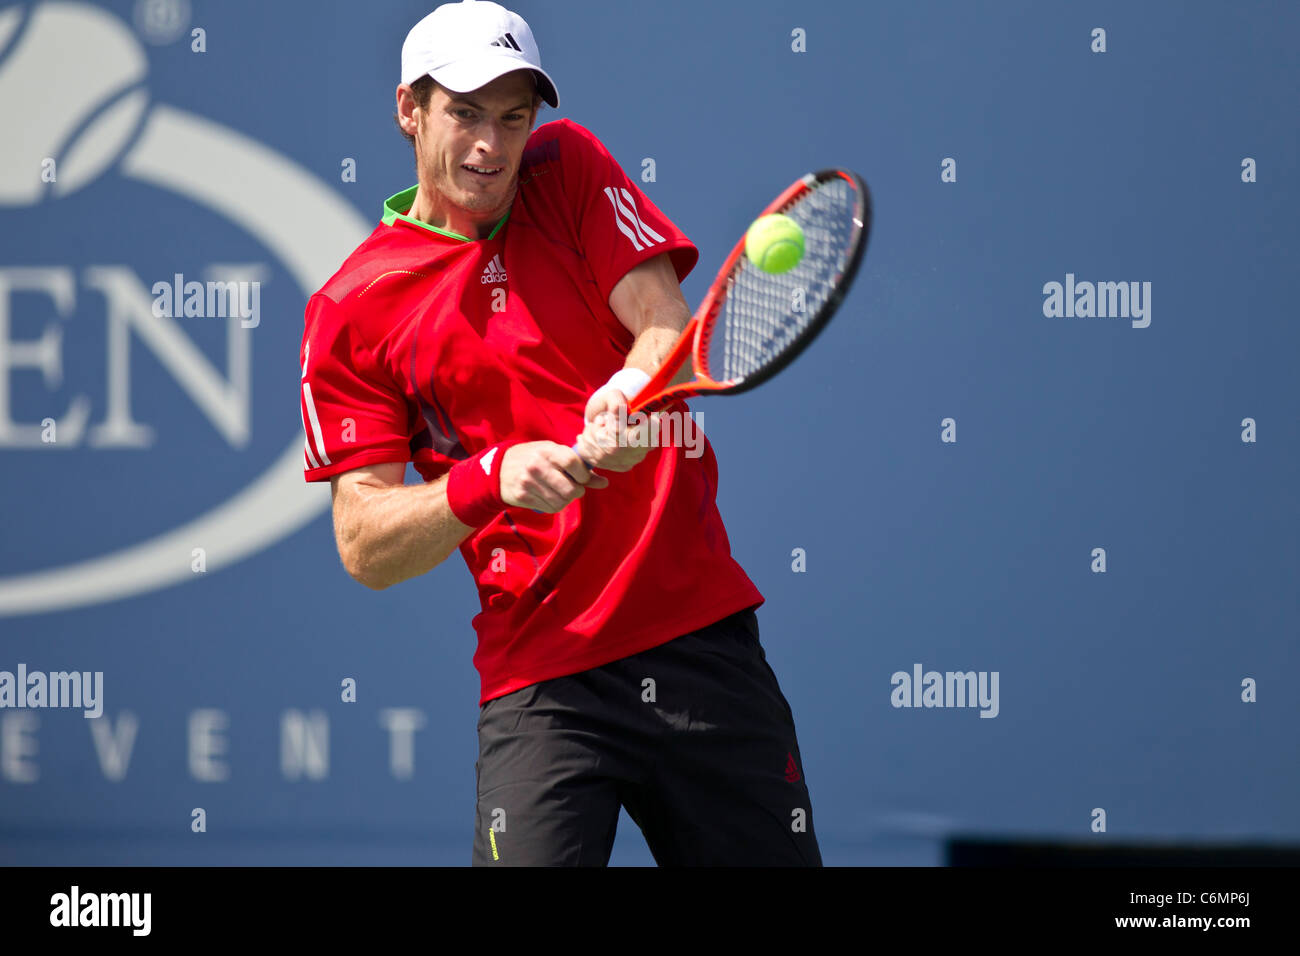 Andy Murray (GBR) competing at the 2011 US Open Tennis. - Stock Image